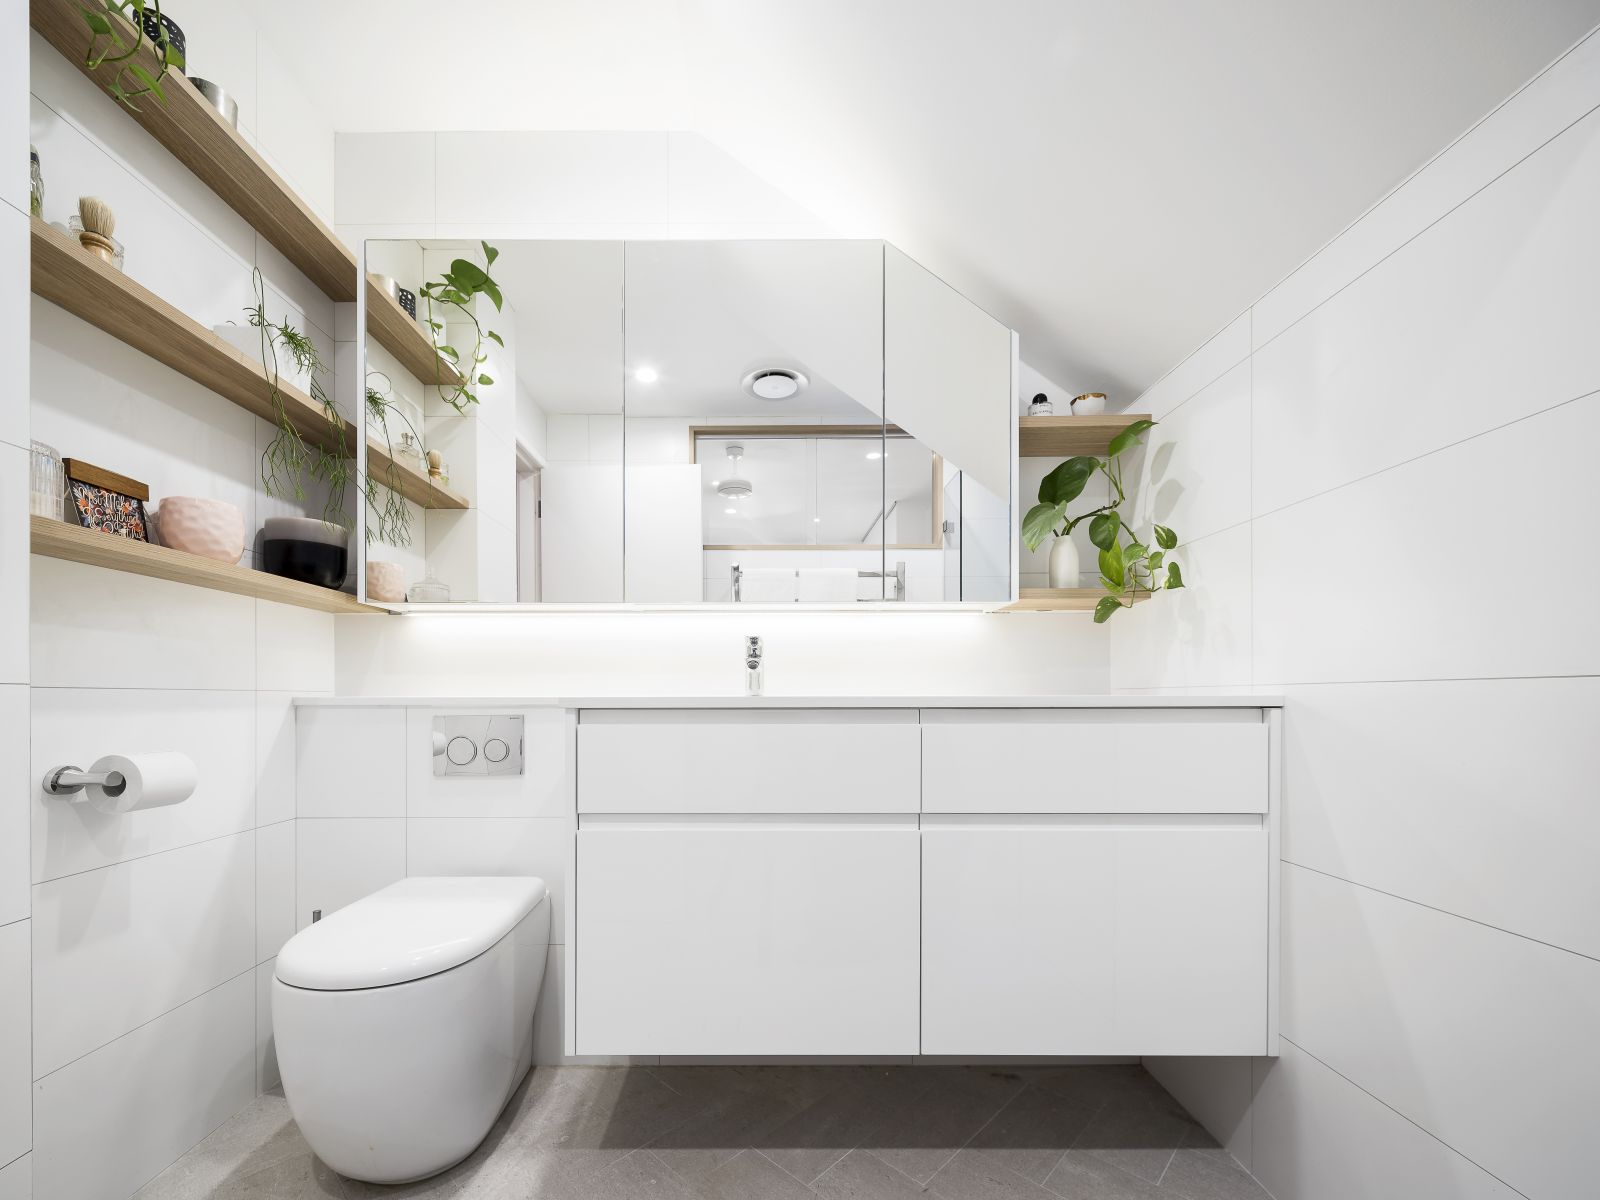 Inspiration For Your Next Renovation Project Balnei Colina Electrical Wiring Rules Bathrooms Image Credit